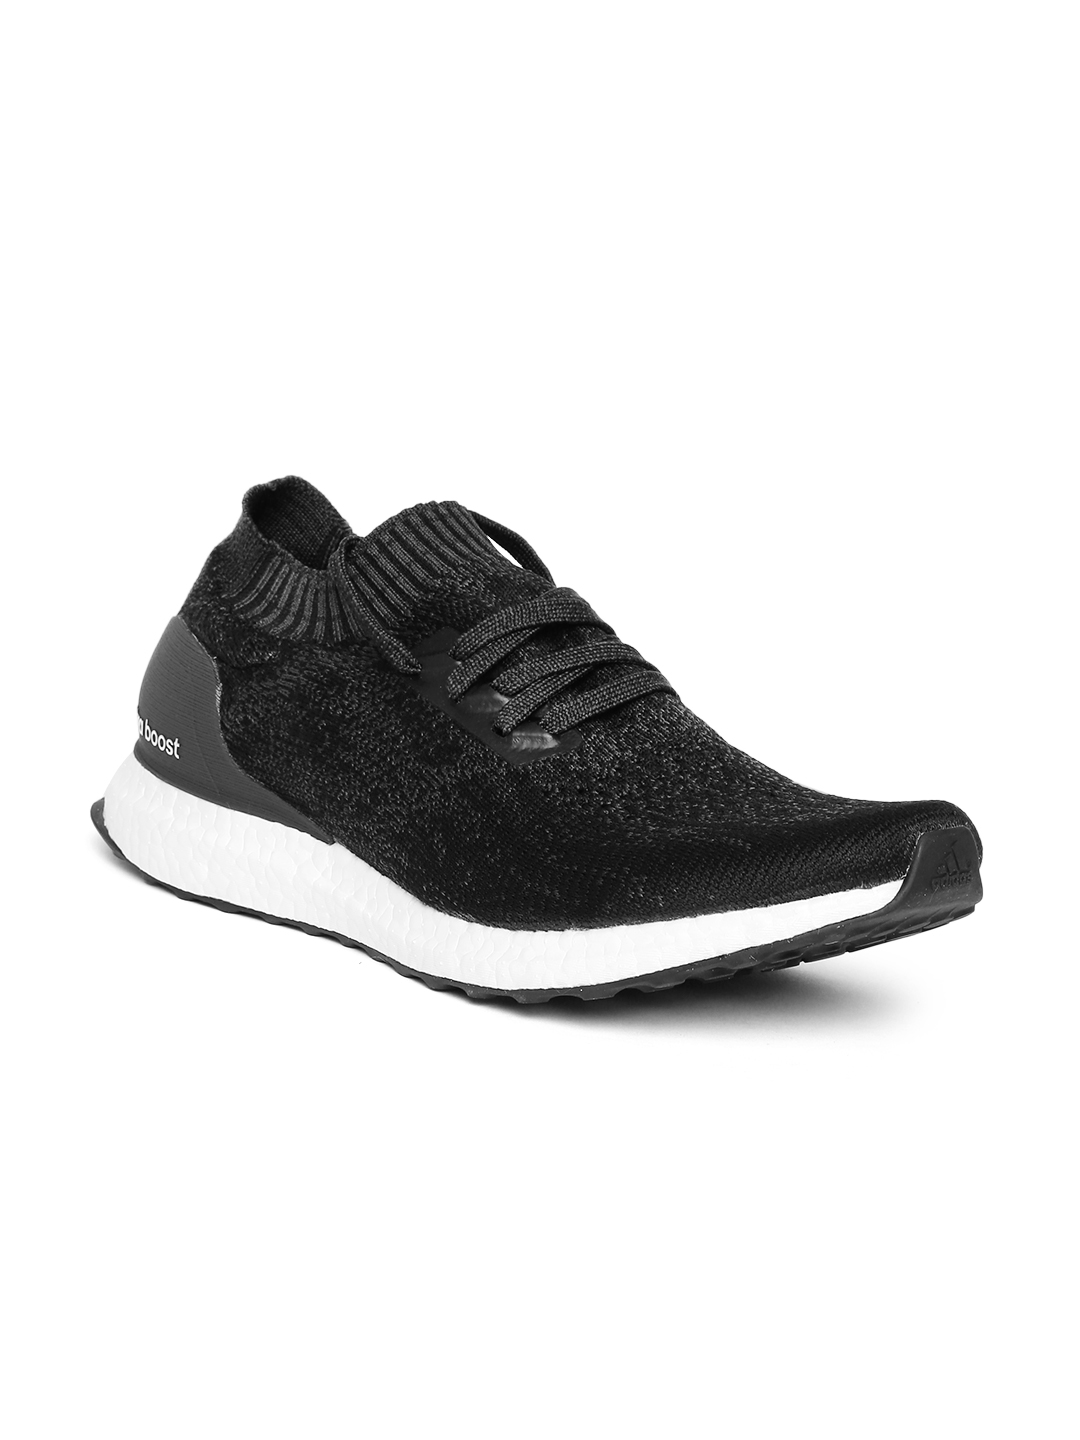 Buy ADIDAS Men Black   Charcoal Grey Ultraboost Uncaged Running ... 01bb10e99